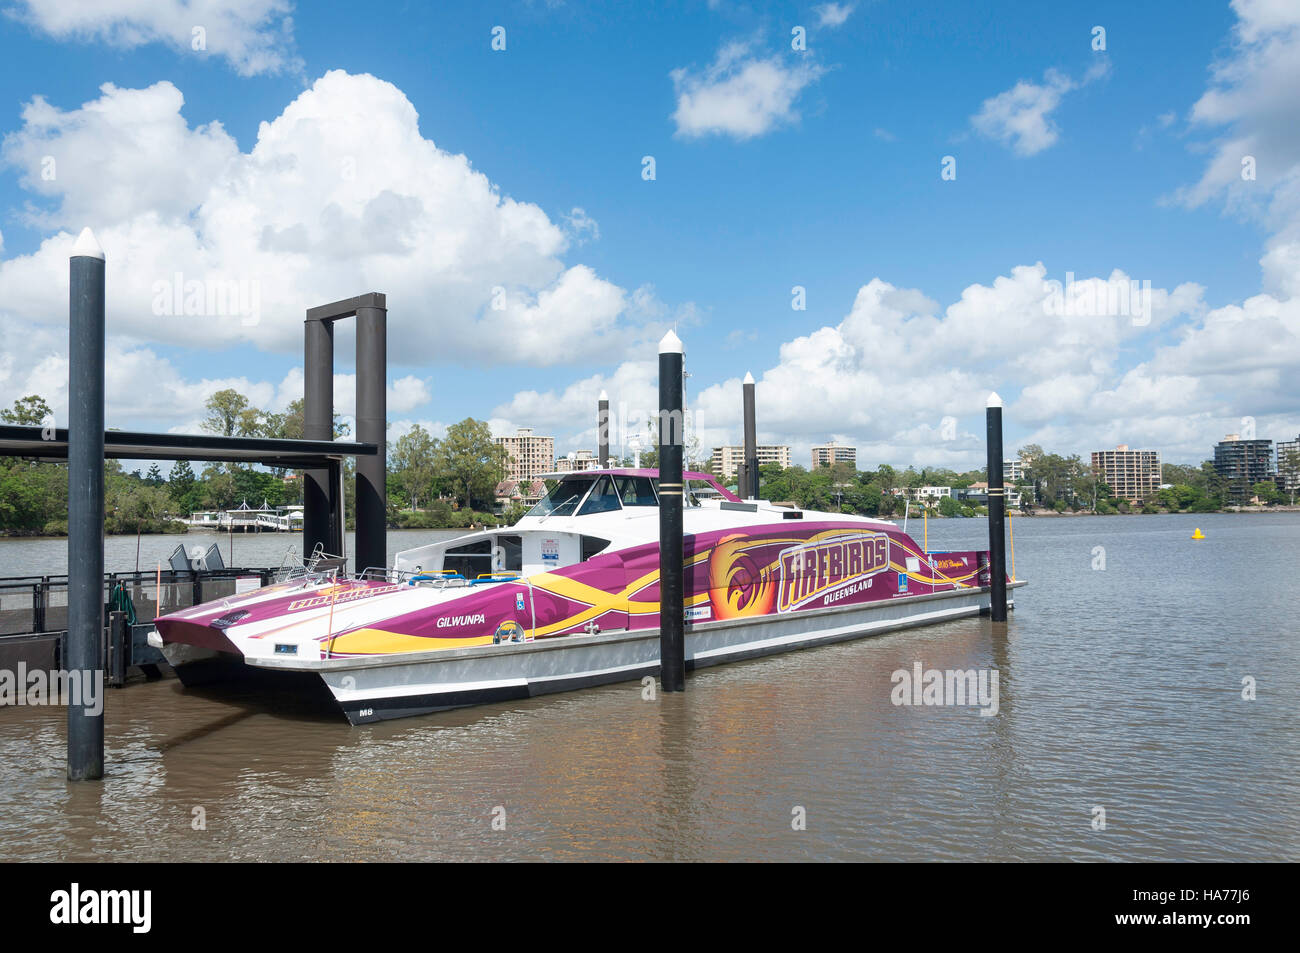 Translink catamaran at West End Ferry Terminal, West End, Brisbane, Queensland, Australia - Stock Image